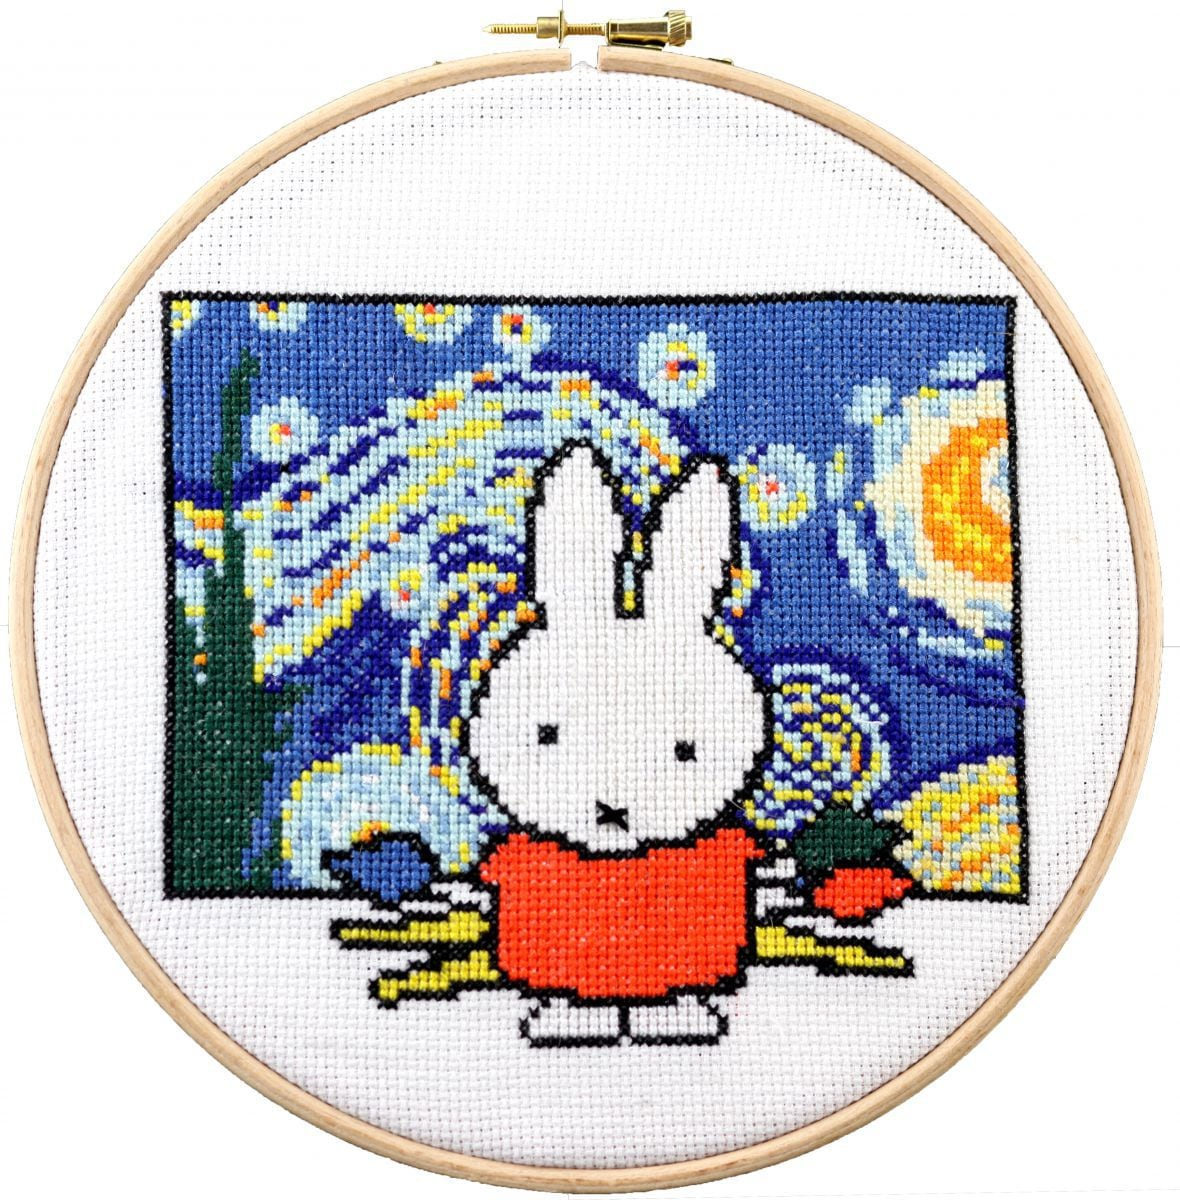 embroidery kit holland miffy painting like van gogh